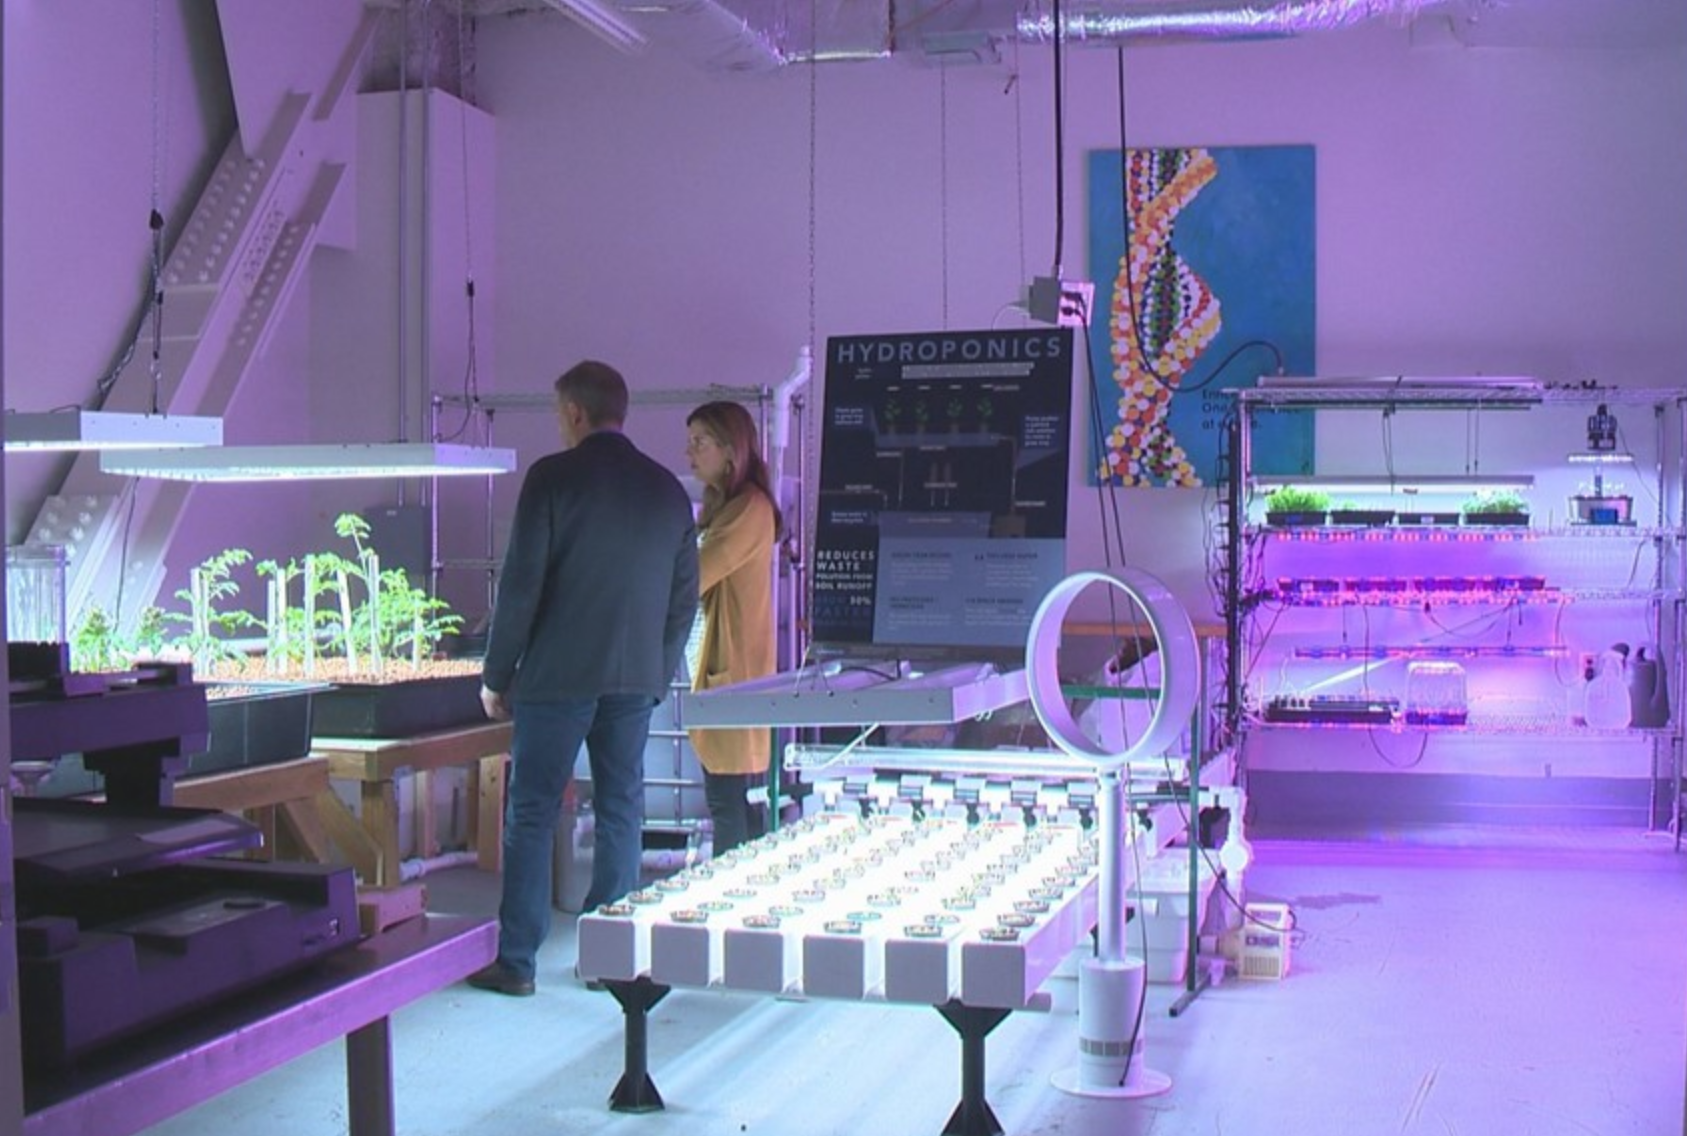 The Nines, a luxury hotel in downtown Portland, is growing much of its own food in hydroponic facilities in the basement of the hotel. Photos by Nina Mehlhaf, KGW 2018